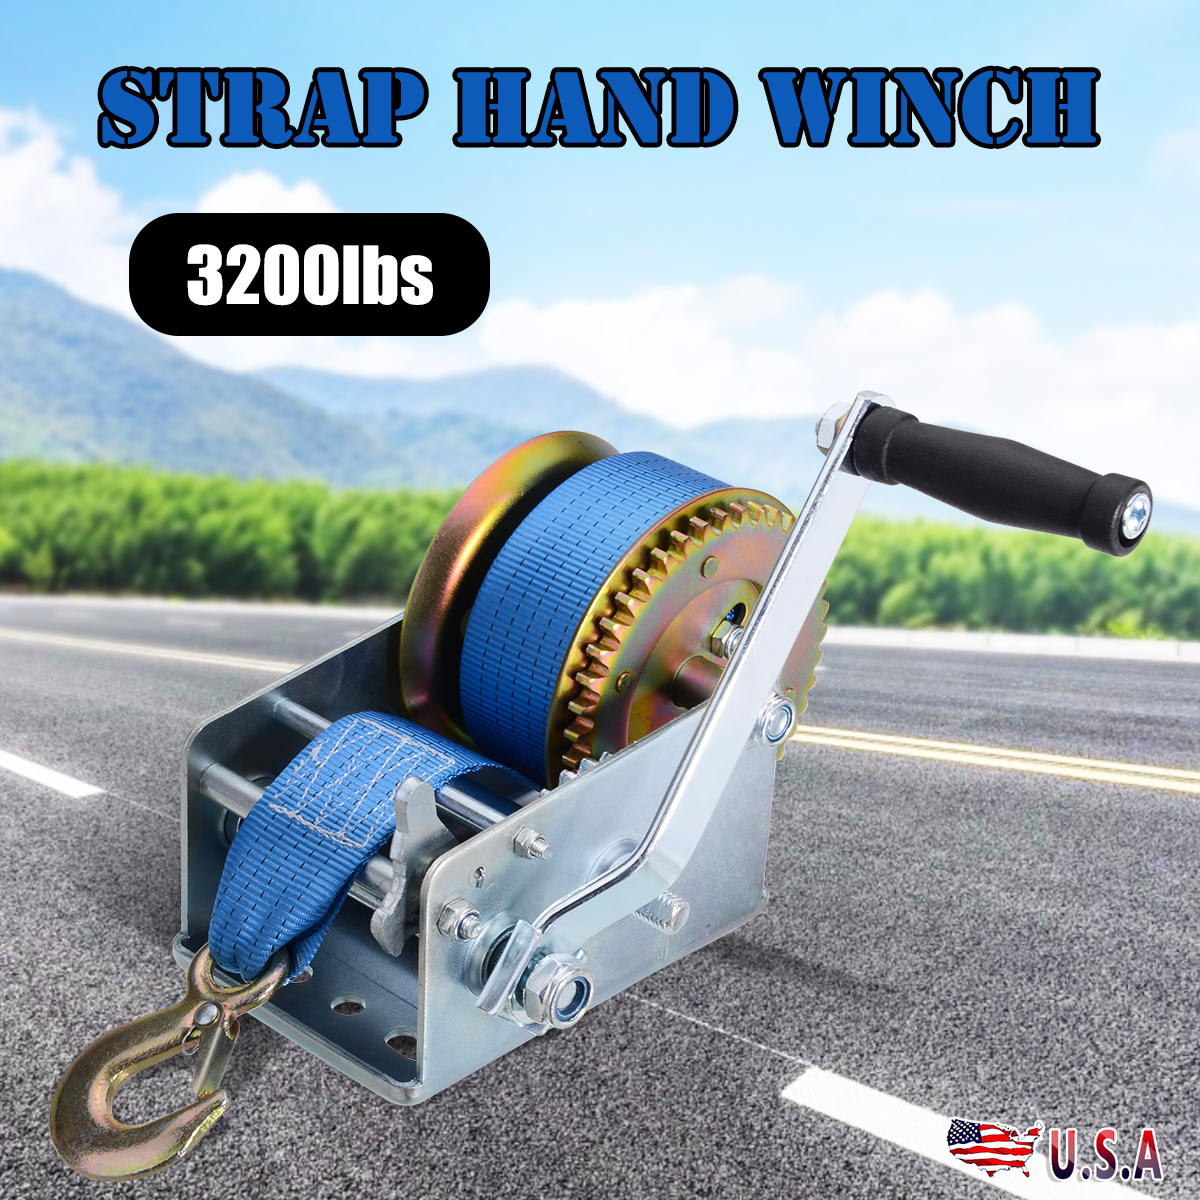 3200lbs Dual Gear Hand Winch 2 Gear Polyester Strap Hand Crank Gear Winch For Trailer ATV Boat Lifting Tool Accessories